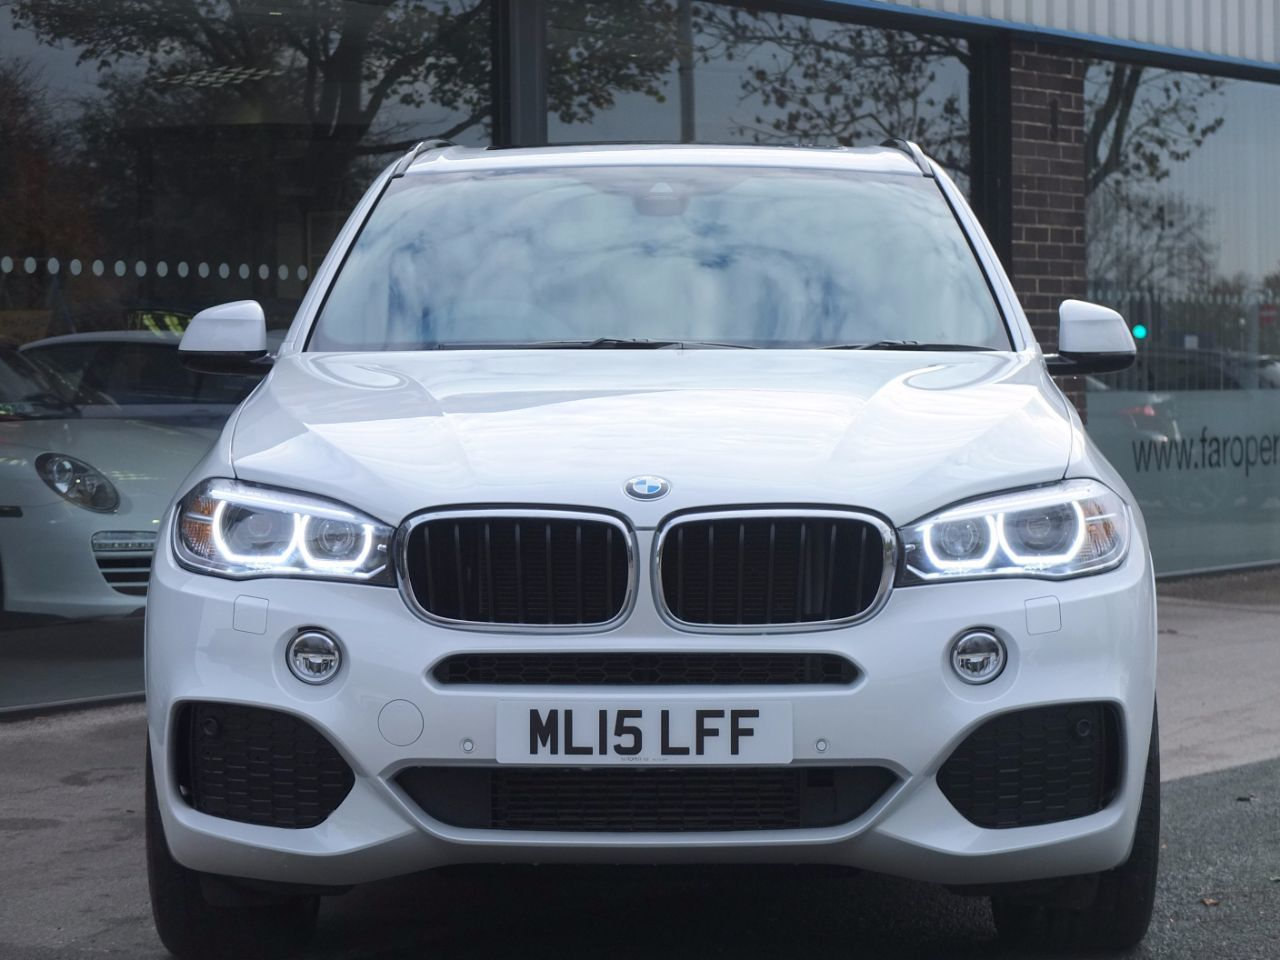 BMW X5 3.0 xDrive30d M Sport Auto Estate Diesel Mineral White Metallic